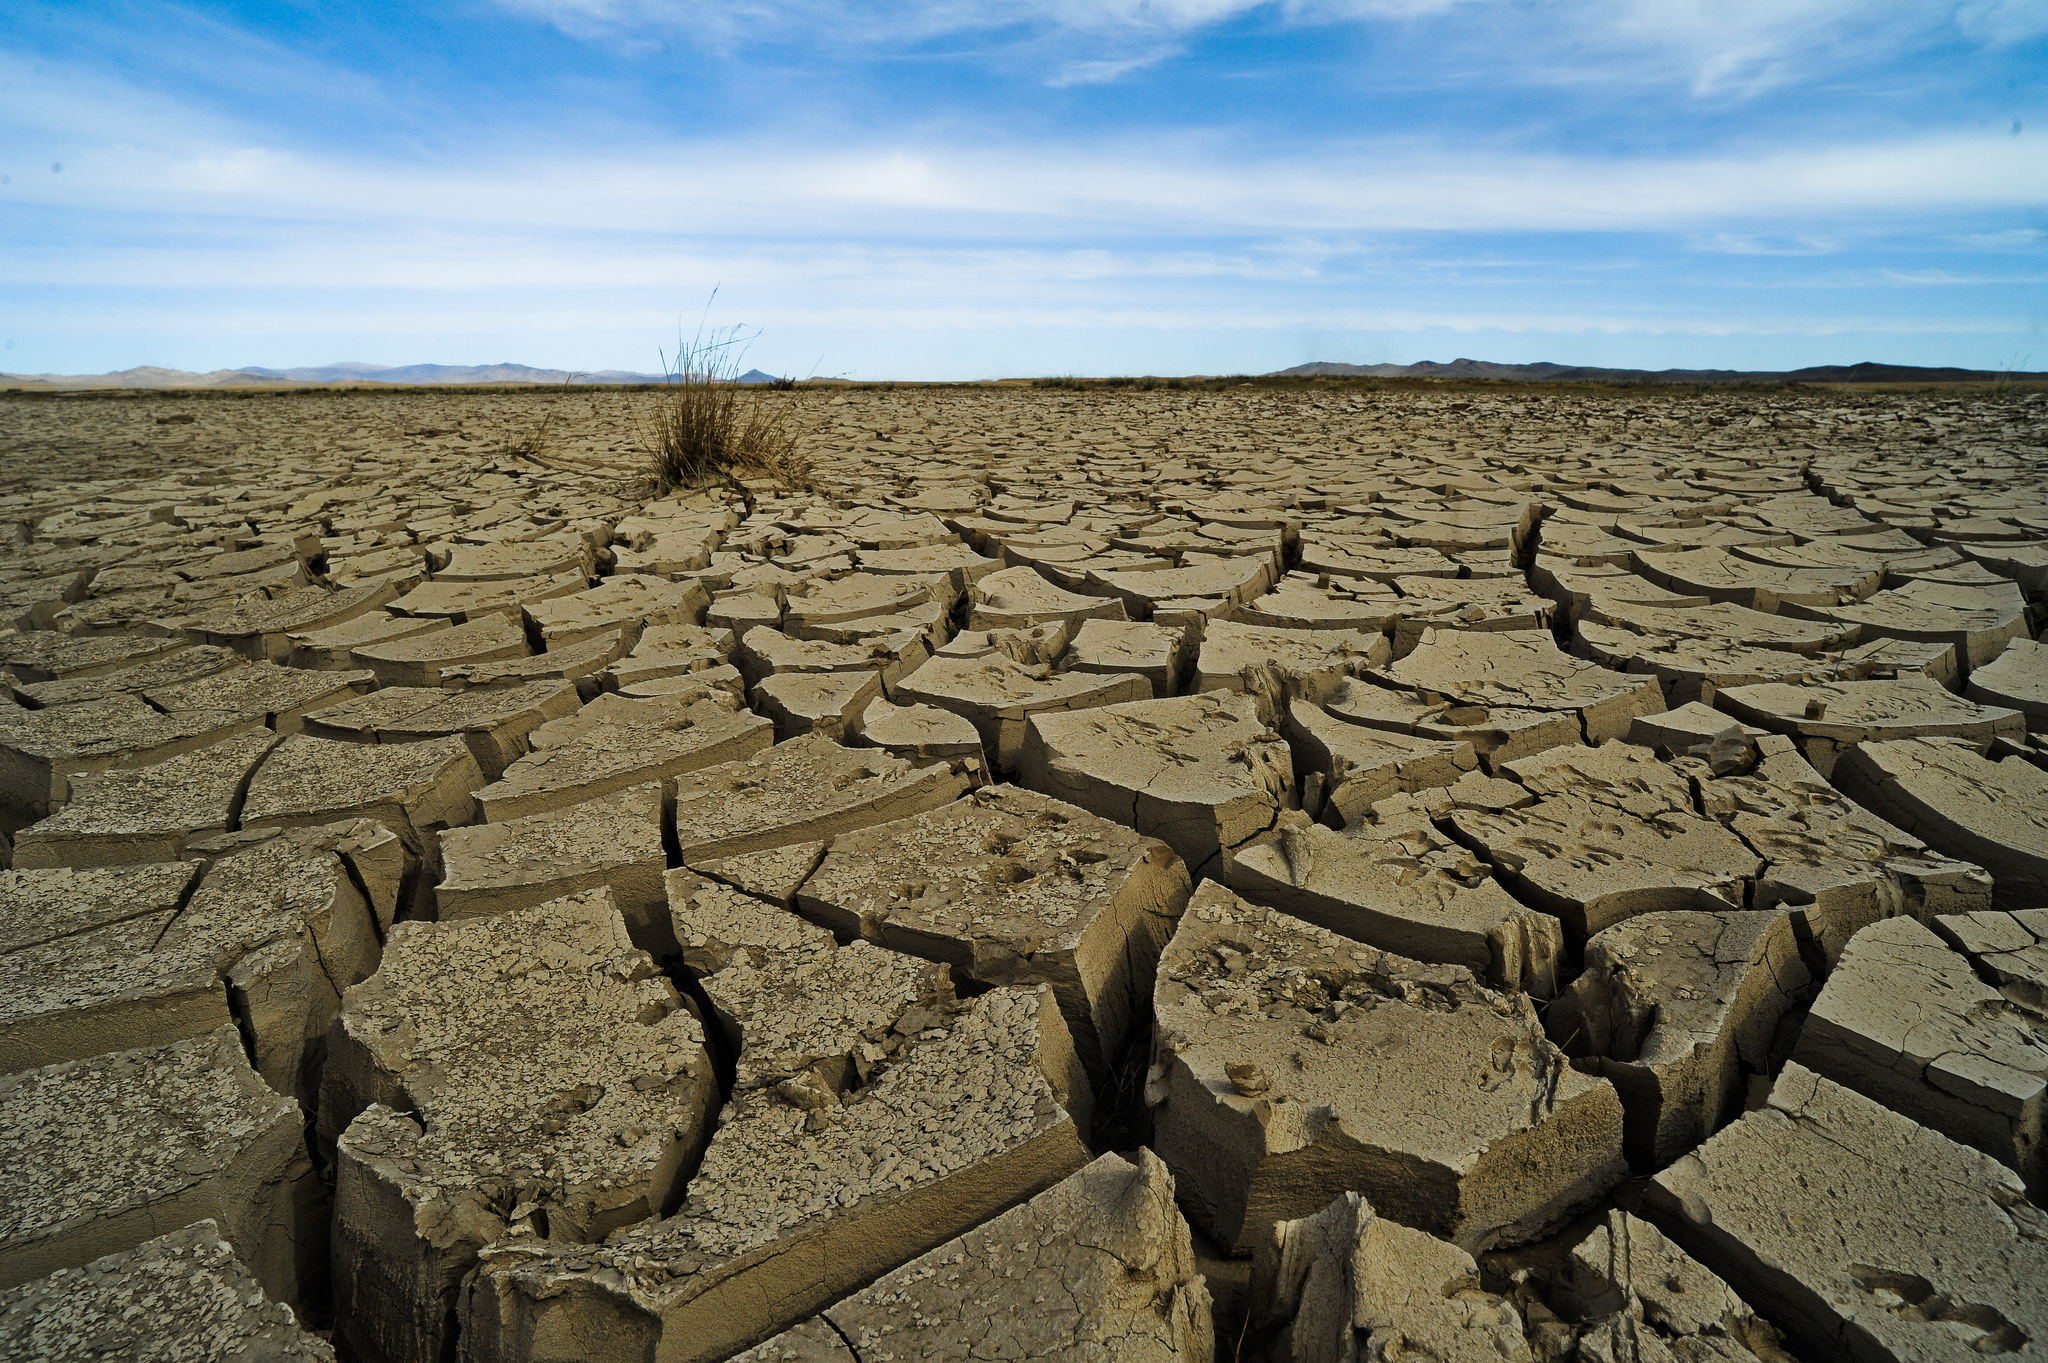 Why has climate change disappeared from the Australian election radar?